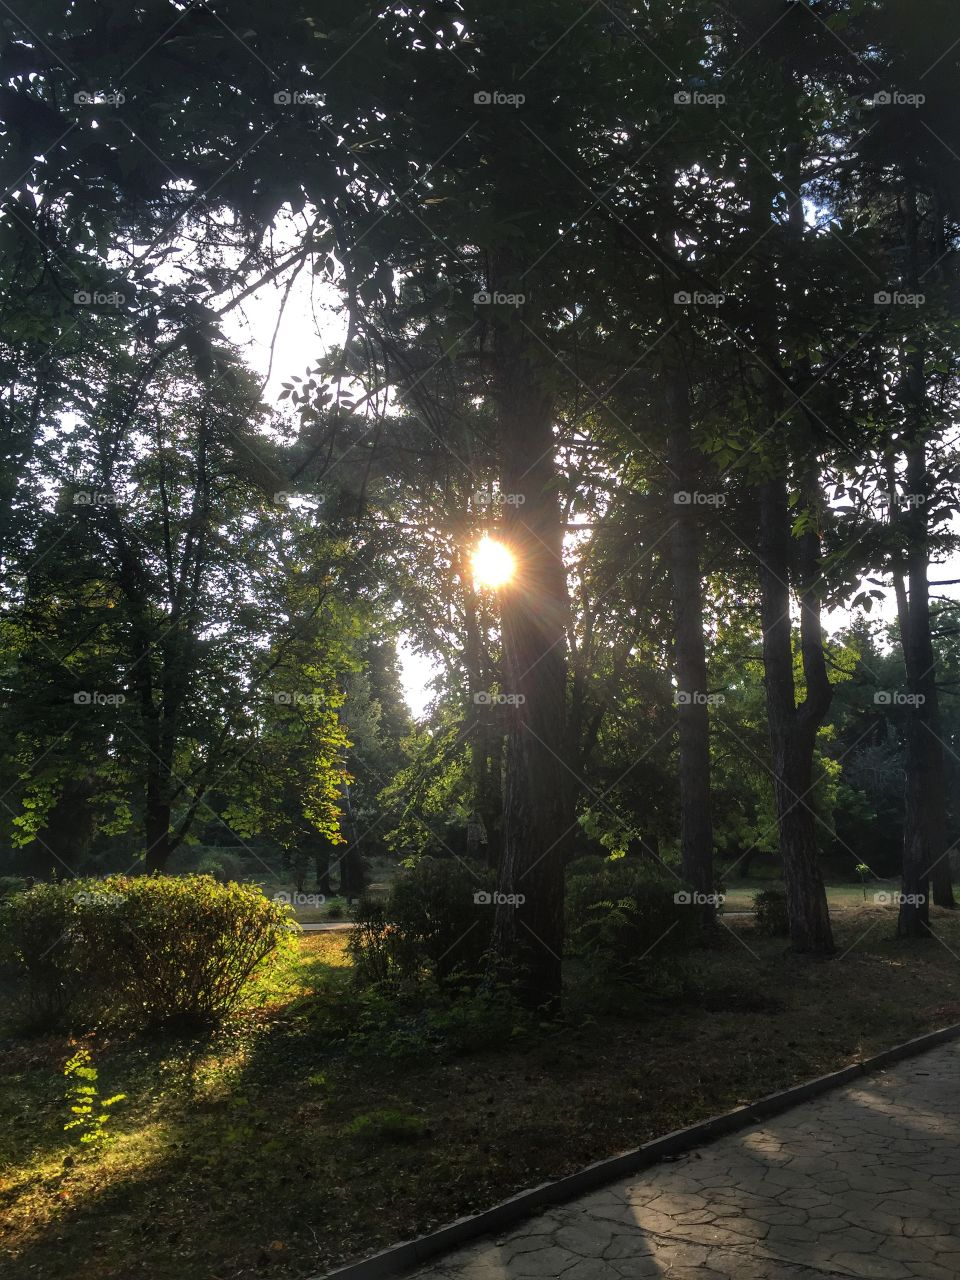 Early sunrise through trees in forest park